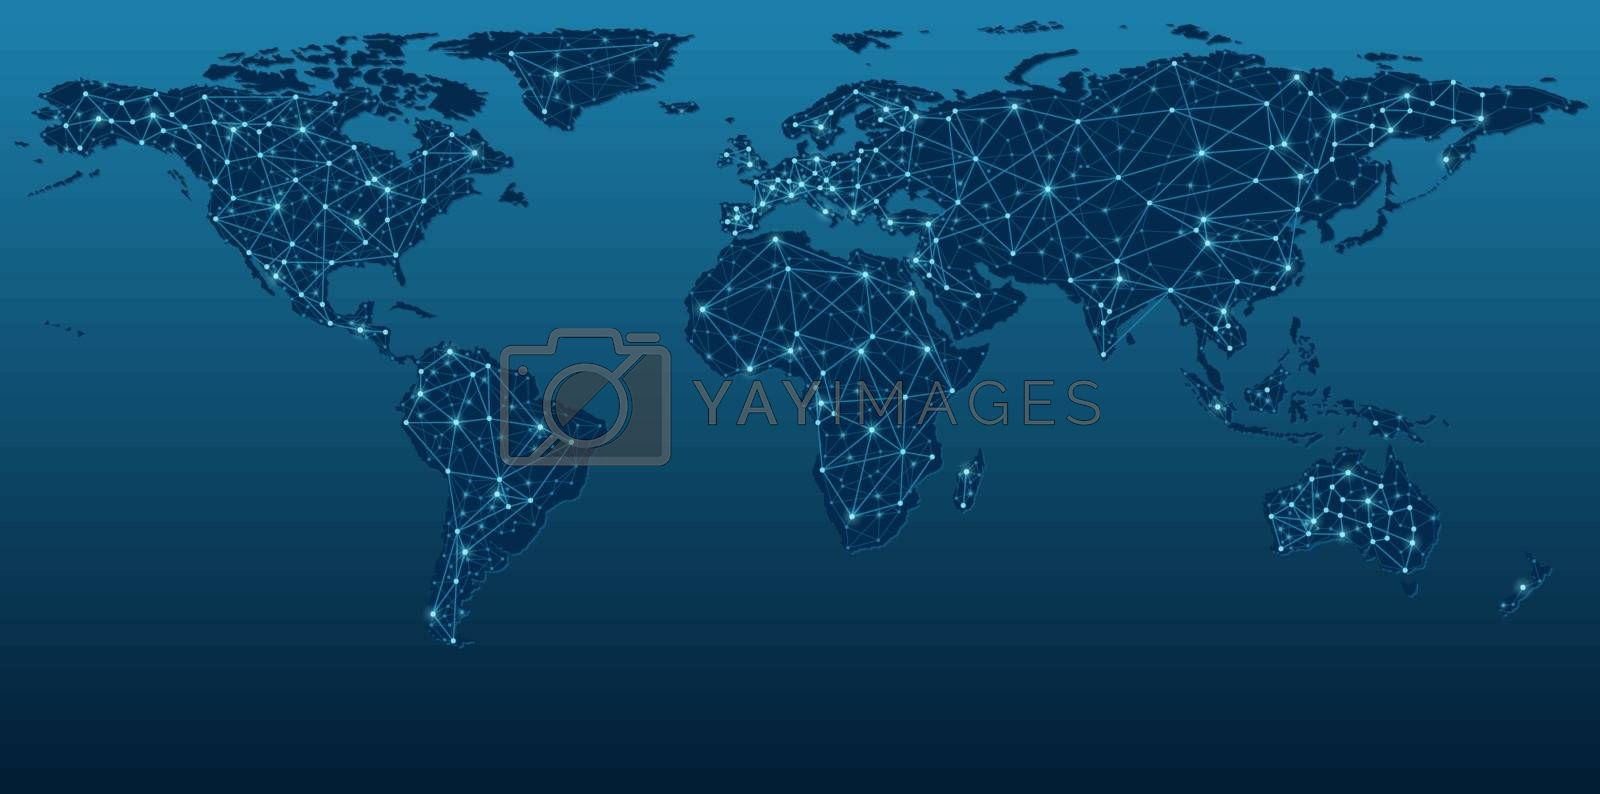 Dark Blue World Map Showing Communication Networks - Abstract Background Illustration, Vector